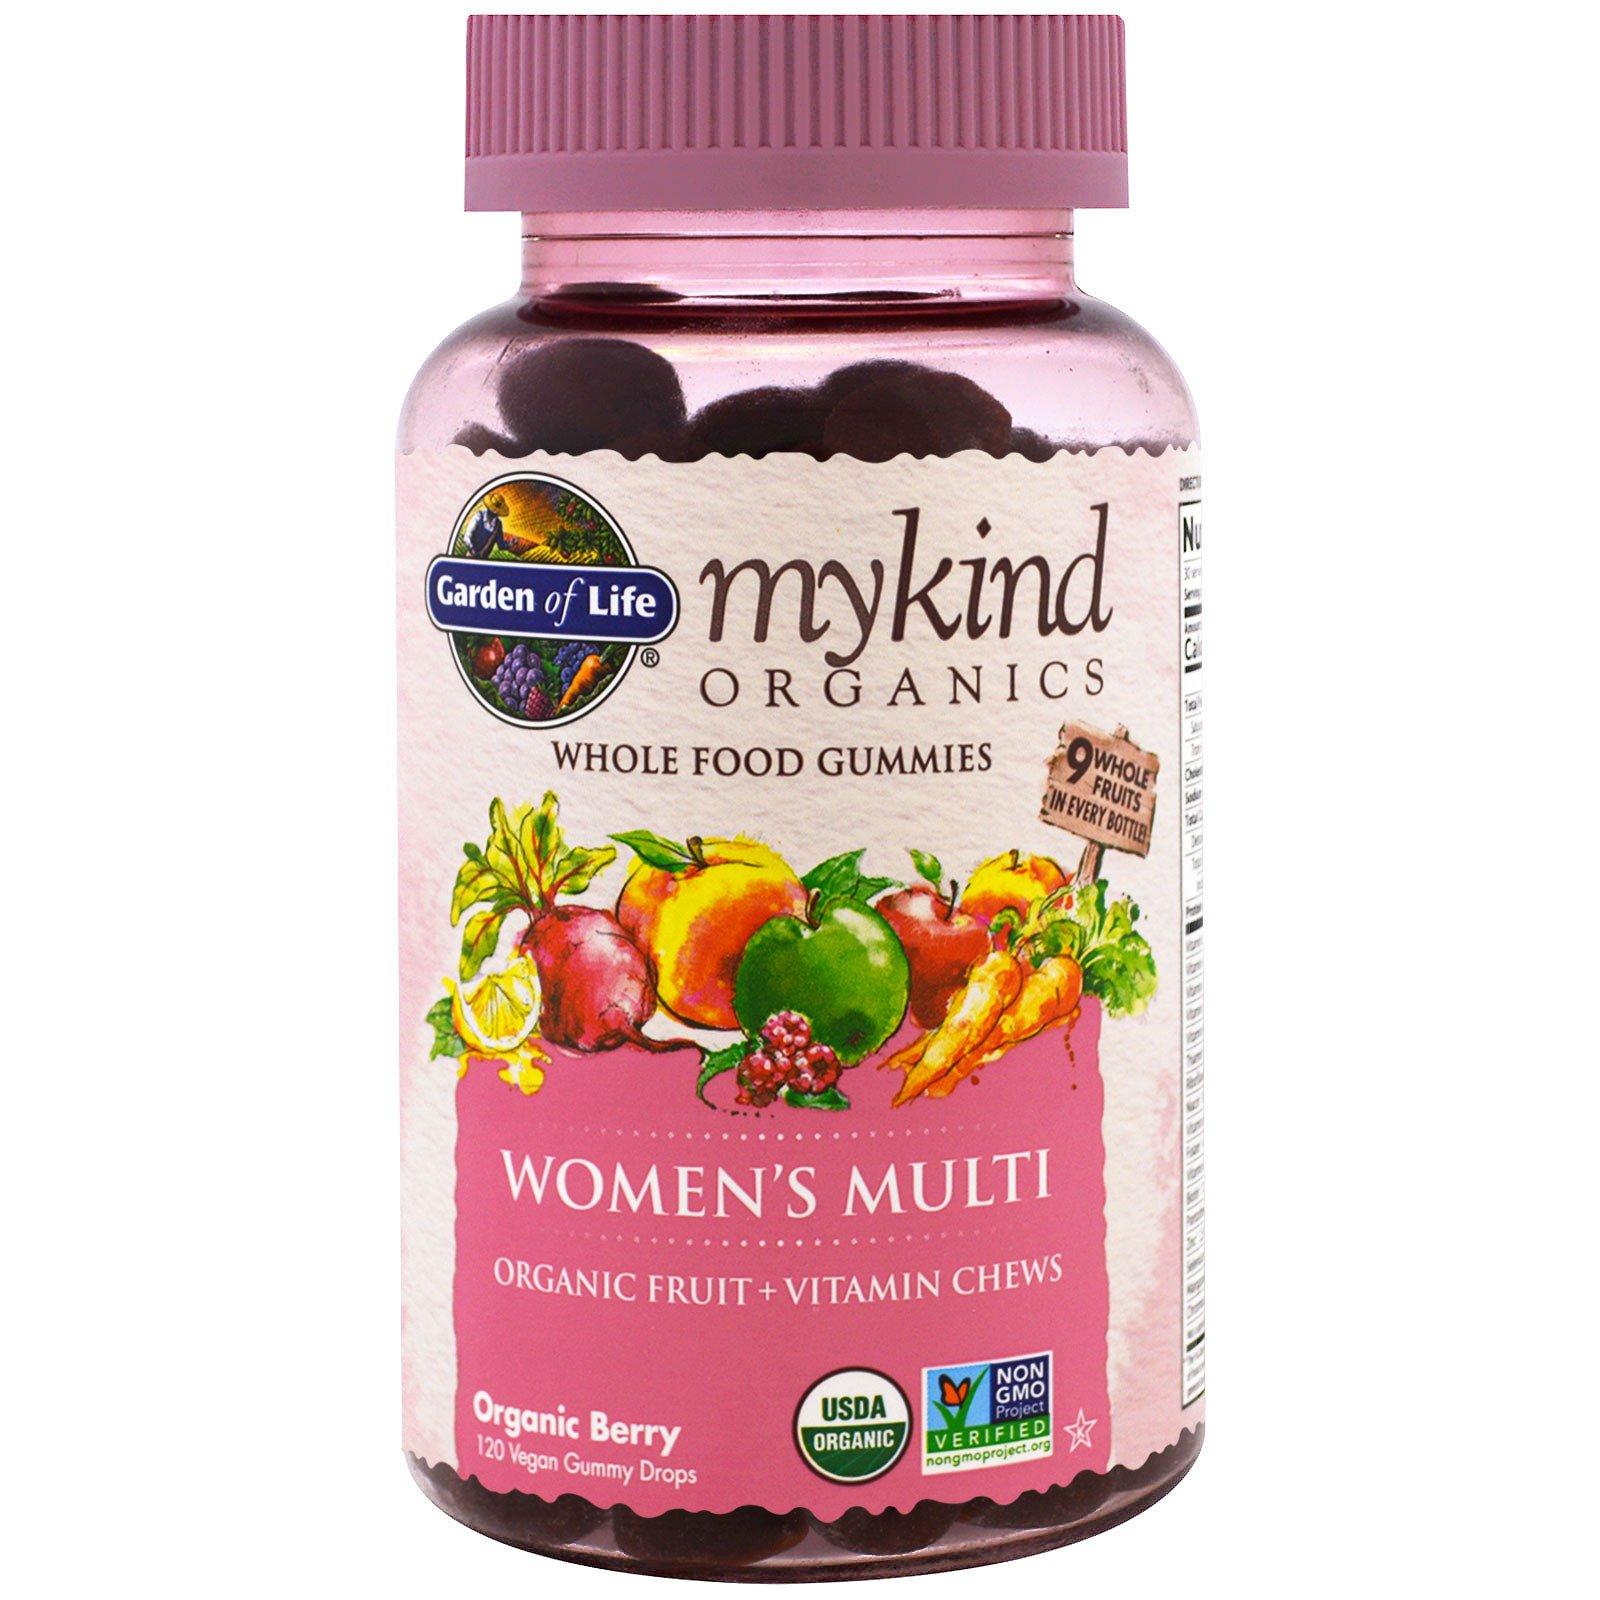 Image result for garden of life vegan gummy multis